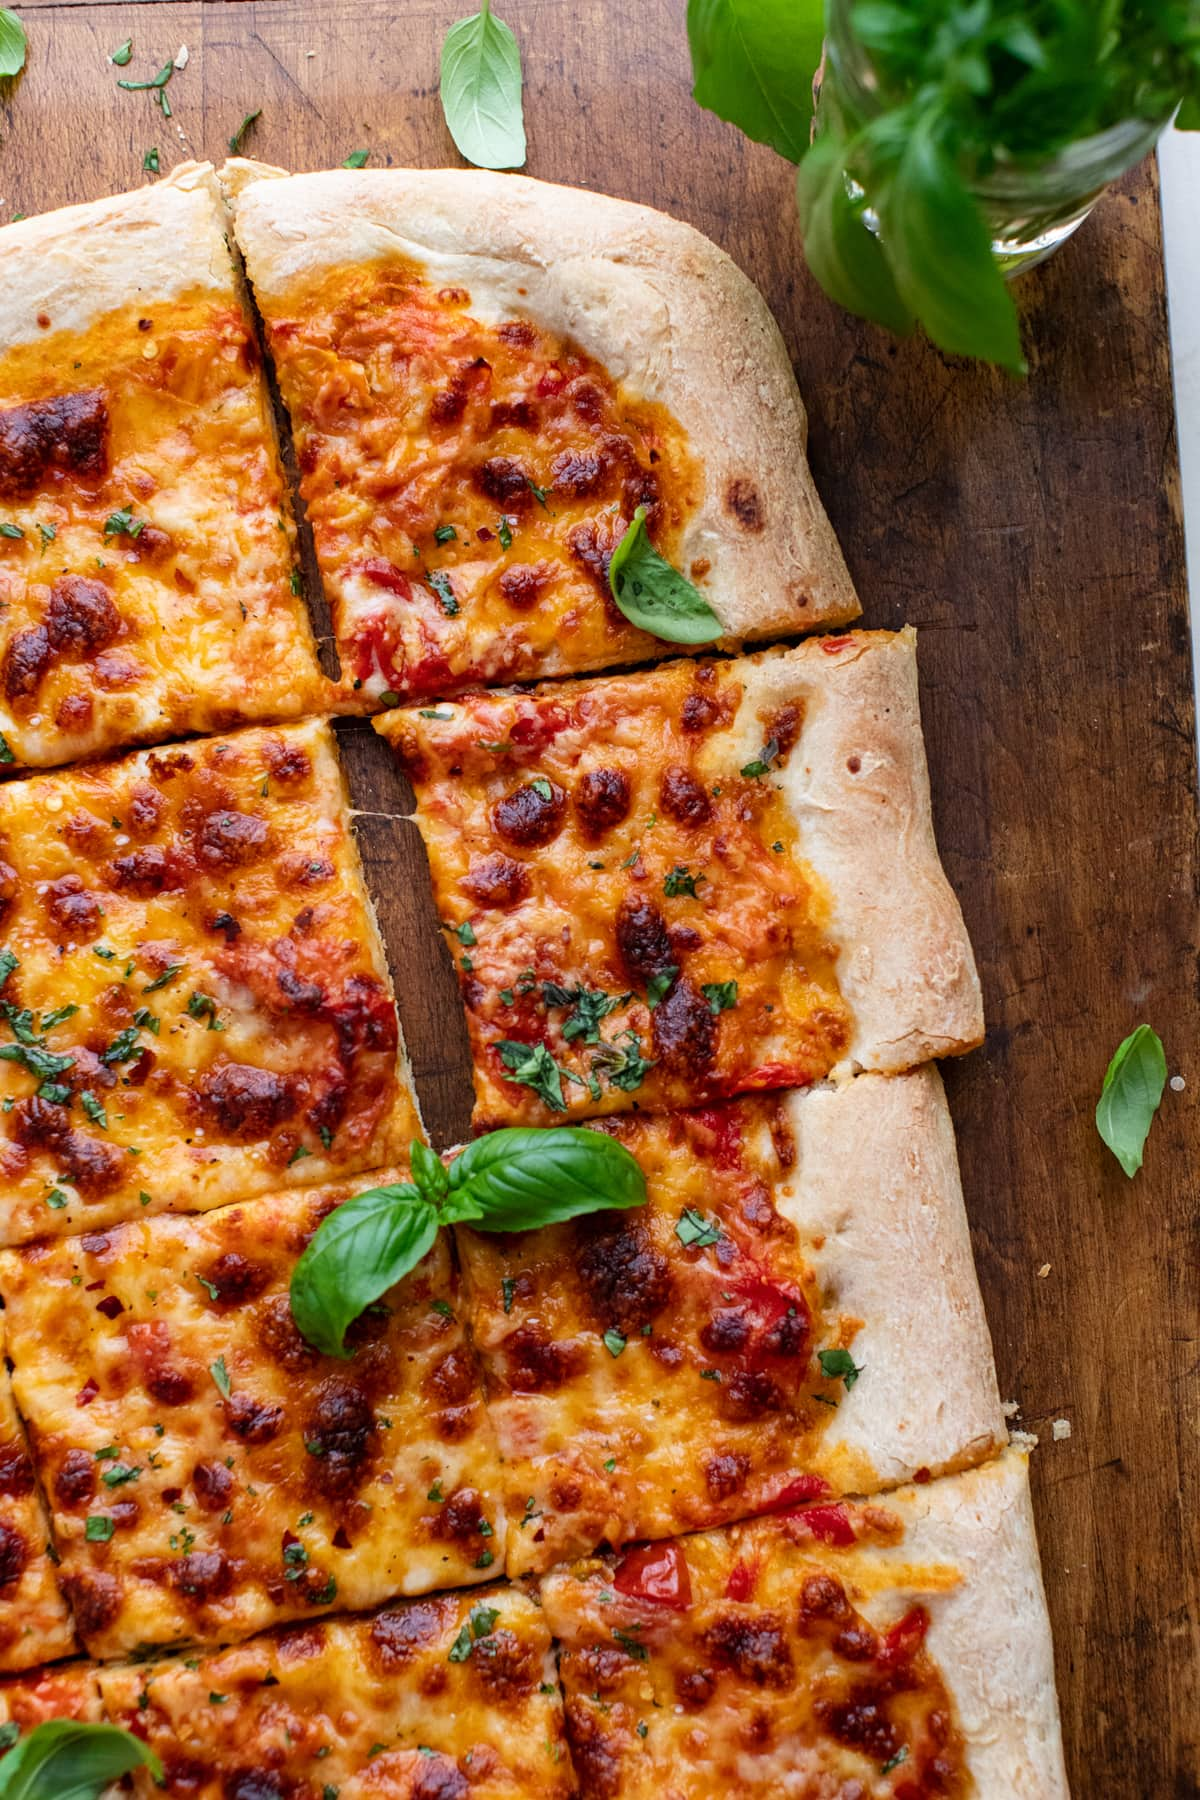 rectangle-shaped pizza cut into slices on a wooden board with fresh herbs arranged around it.